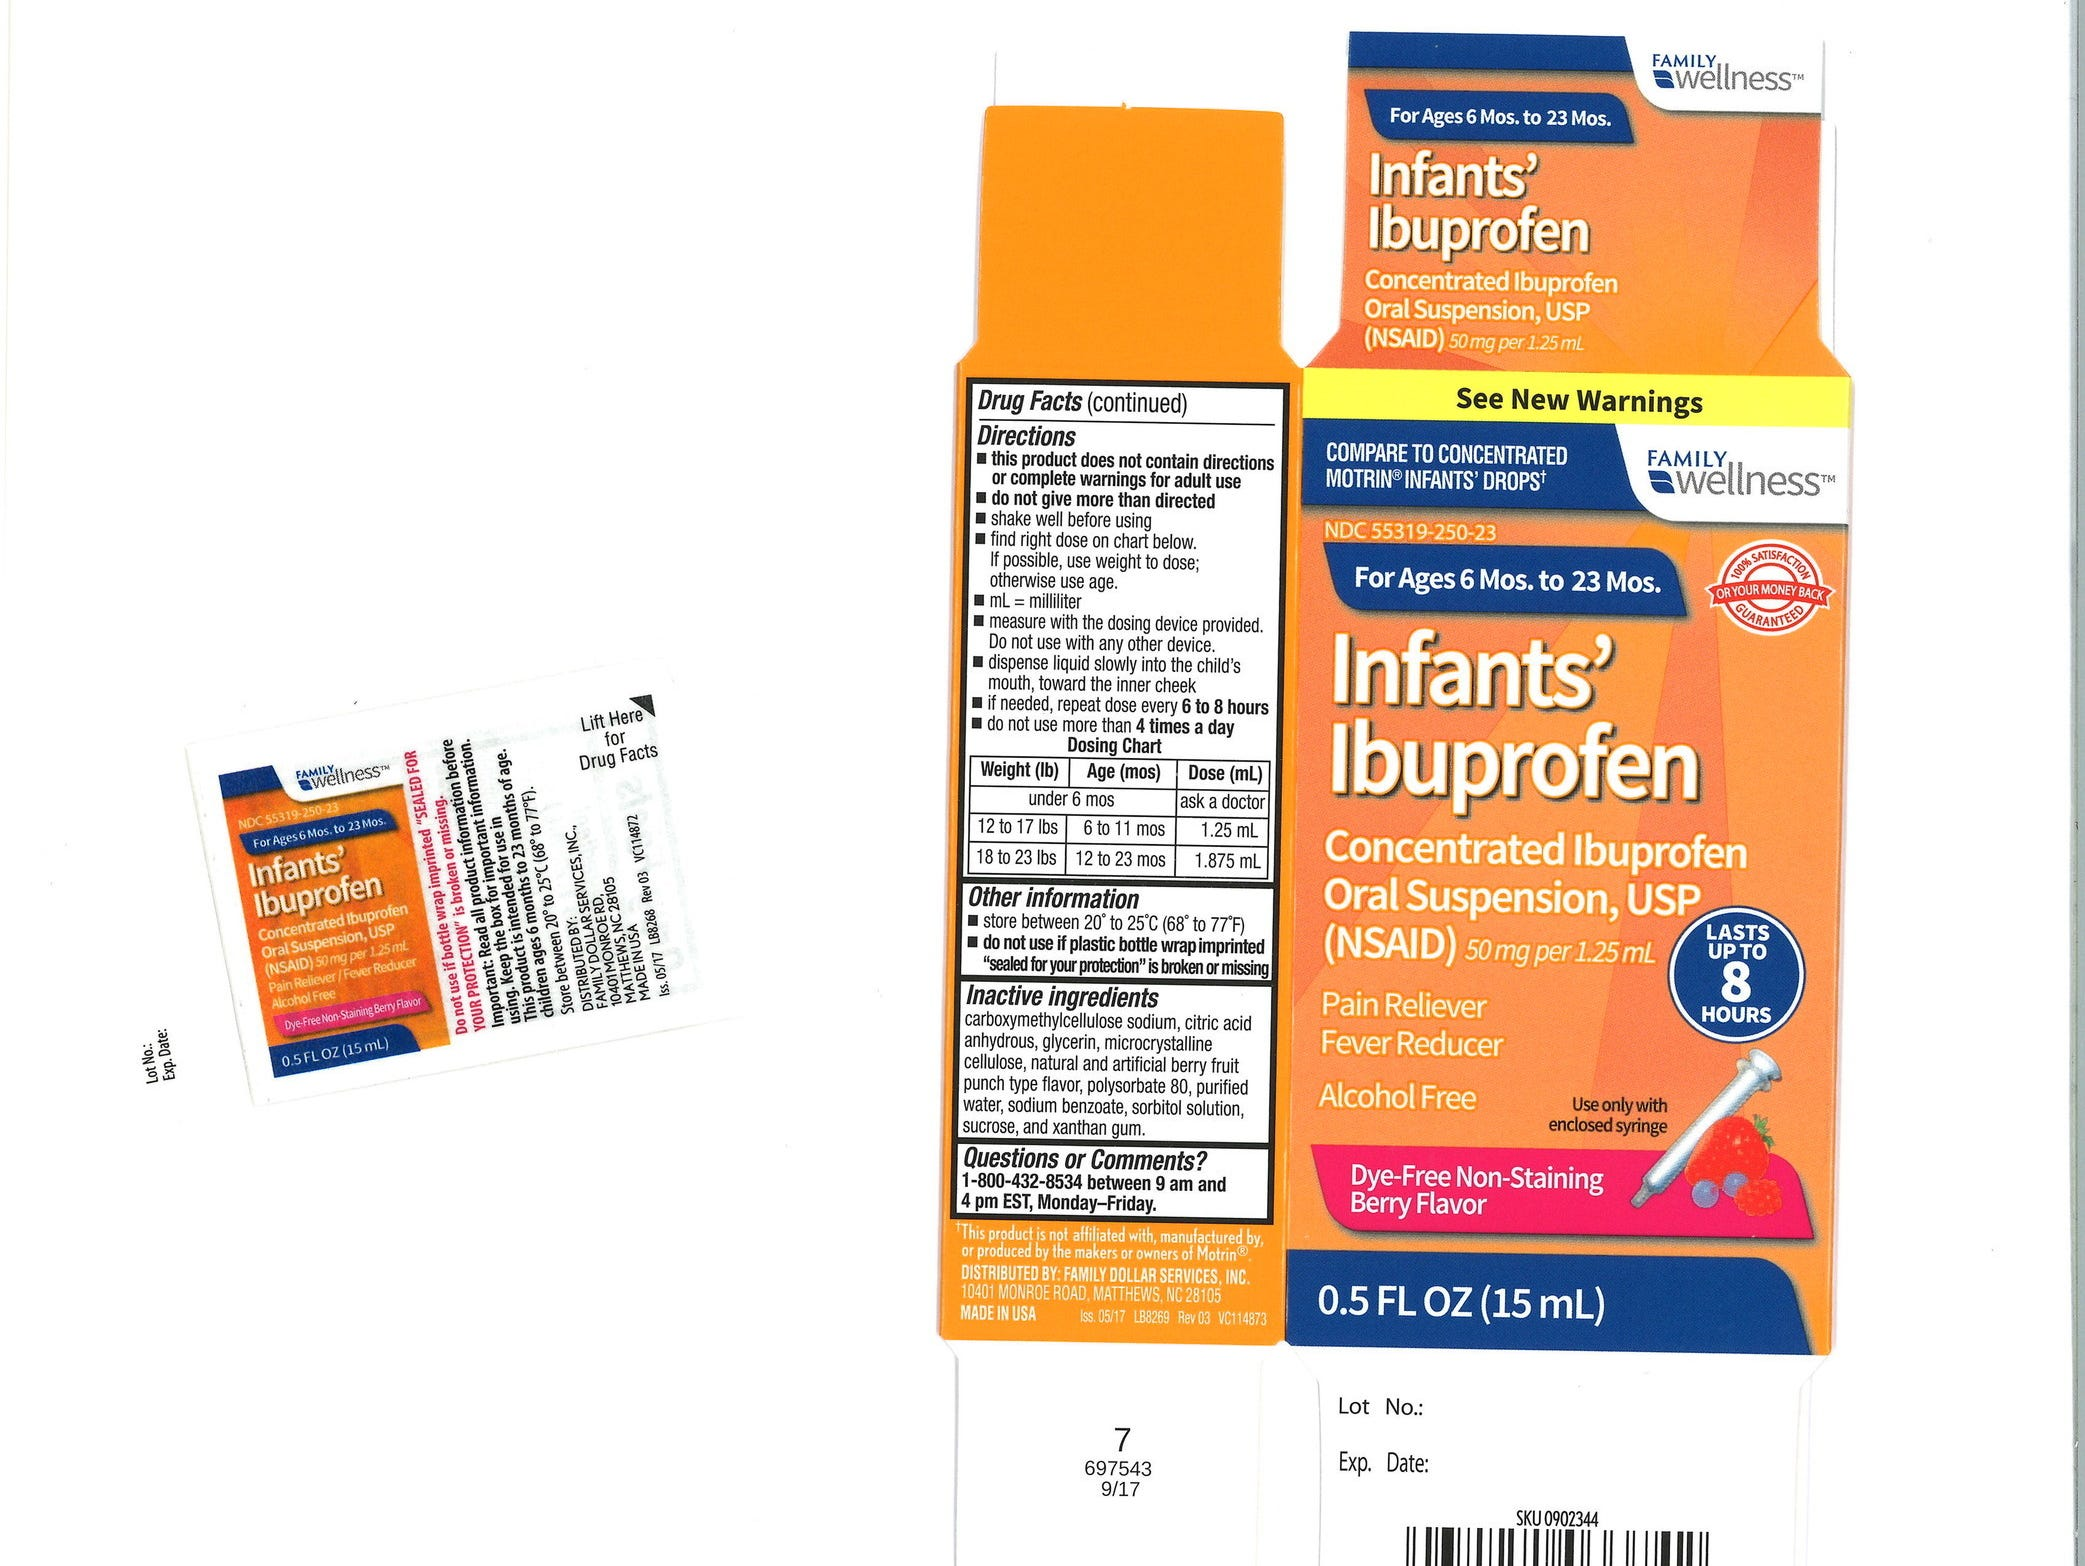 Recall issued for infants' ibuprofen